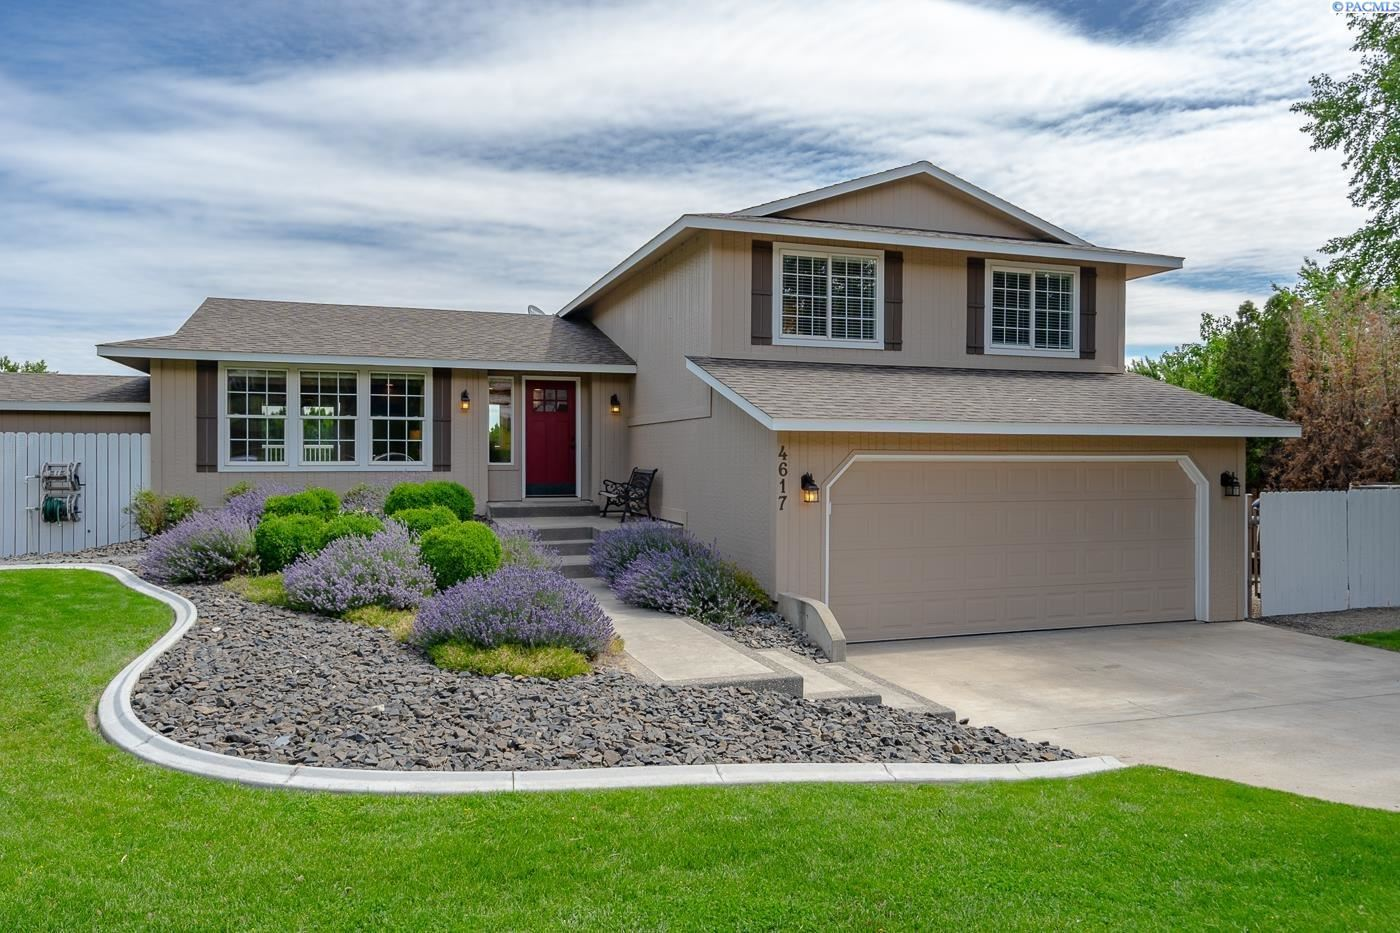 Photo of 4617 S Quincy Place, Kennewick, WA 99337 (MLS # 254358)